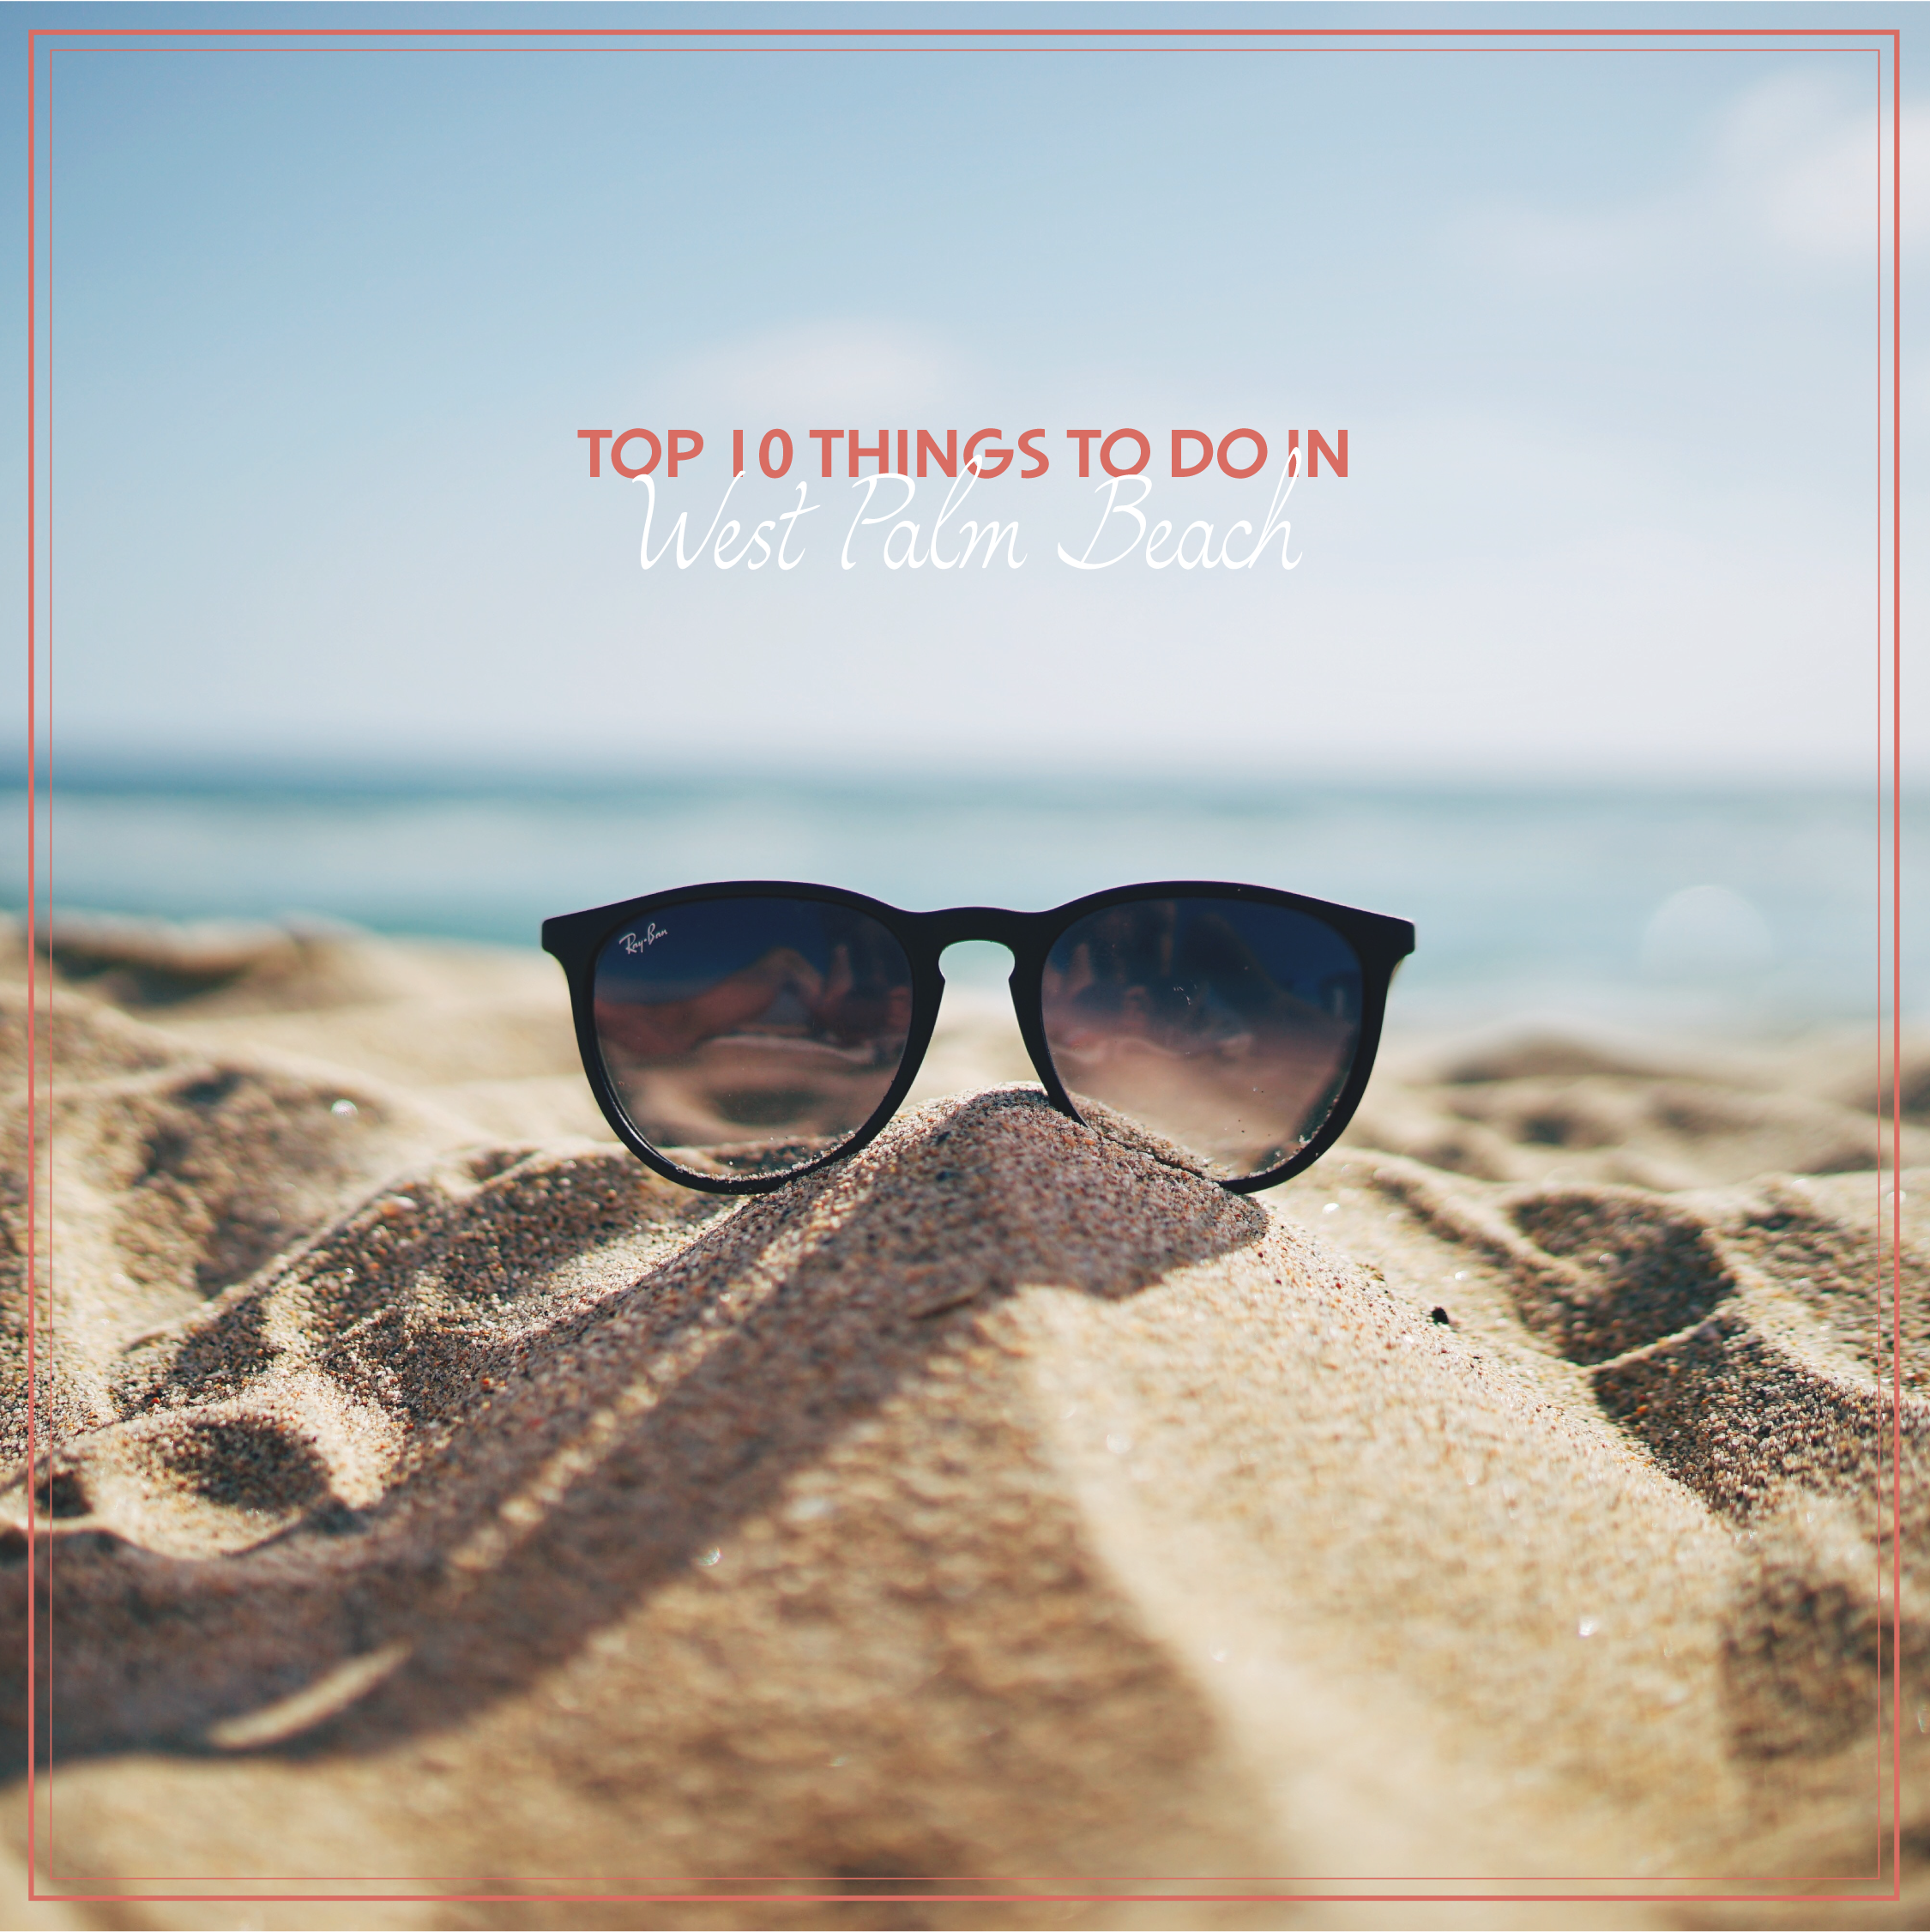 Top 10 Things To Do In West Palm Beach Sunglasses Latest Fashion Trends Summer Special